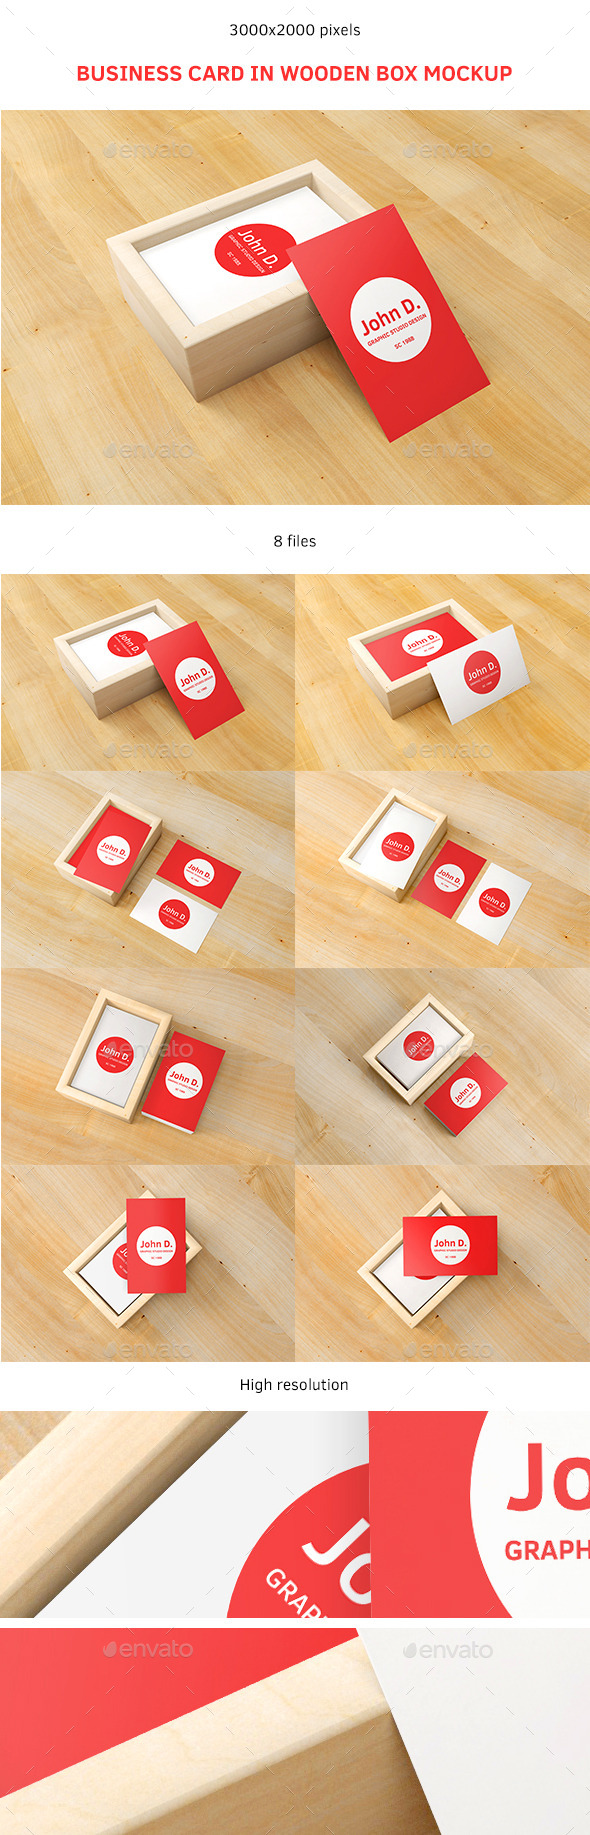 GraphicRiver Business Card in Wooden Box Mockup 9057160